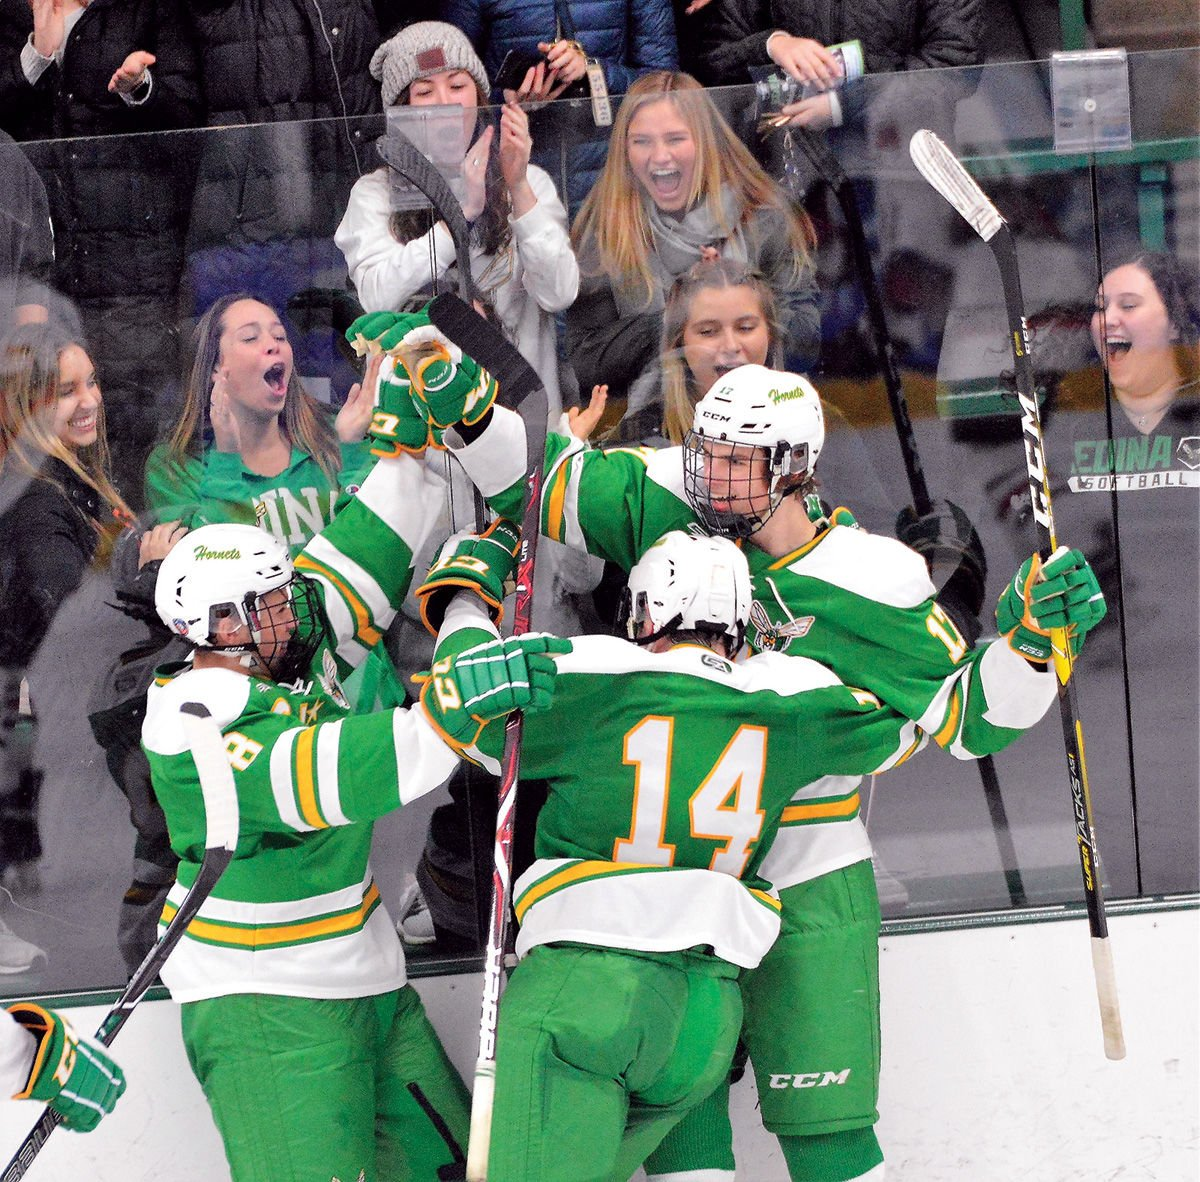 MN H.S.: Edina Sweeps Holiday Classic, Outscoring Opponents 20-3